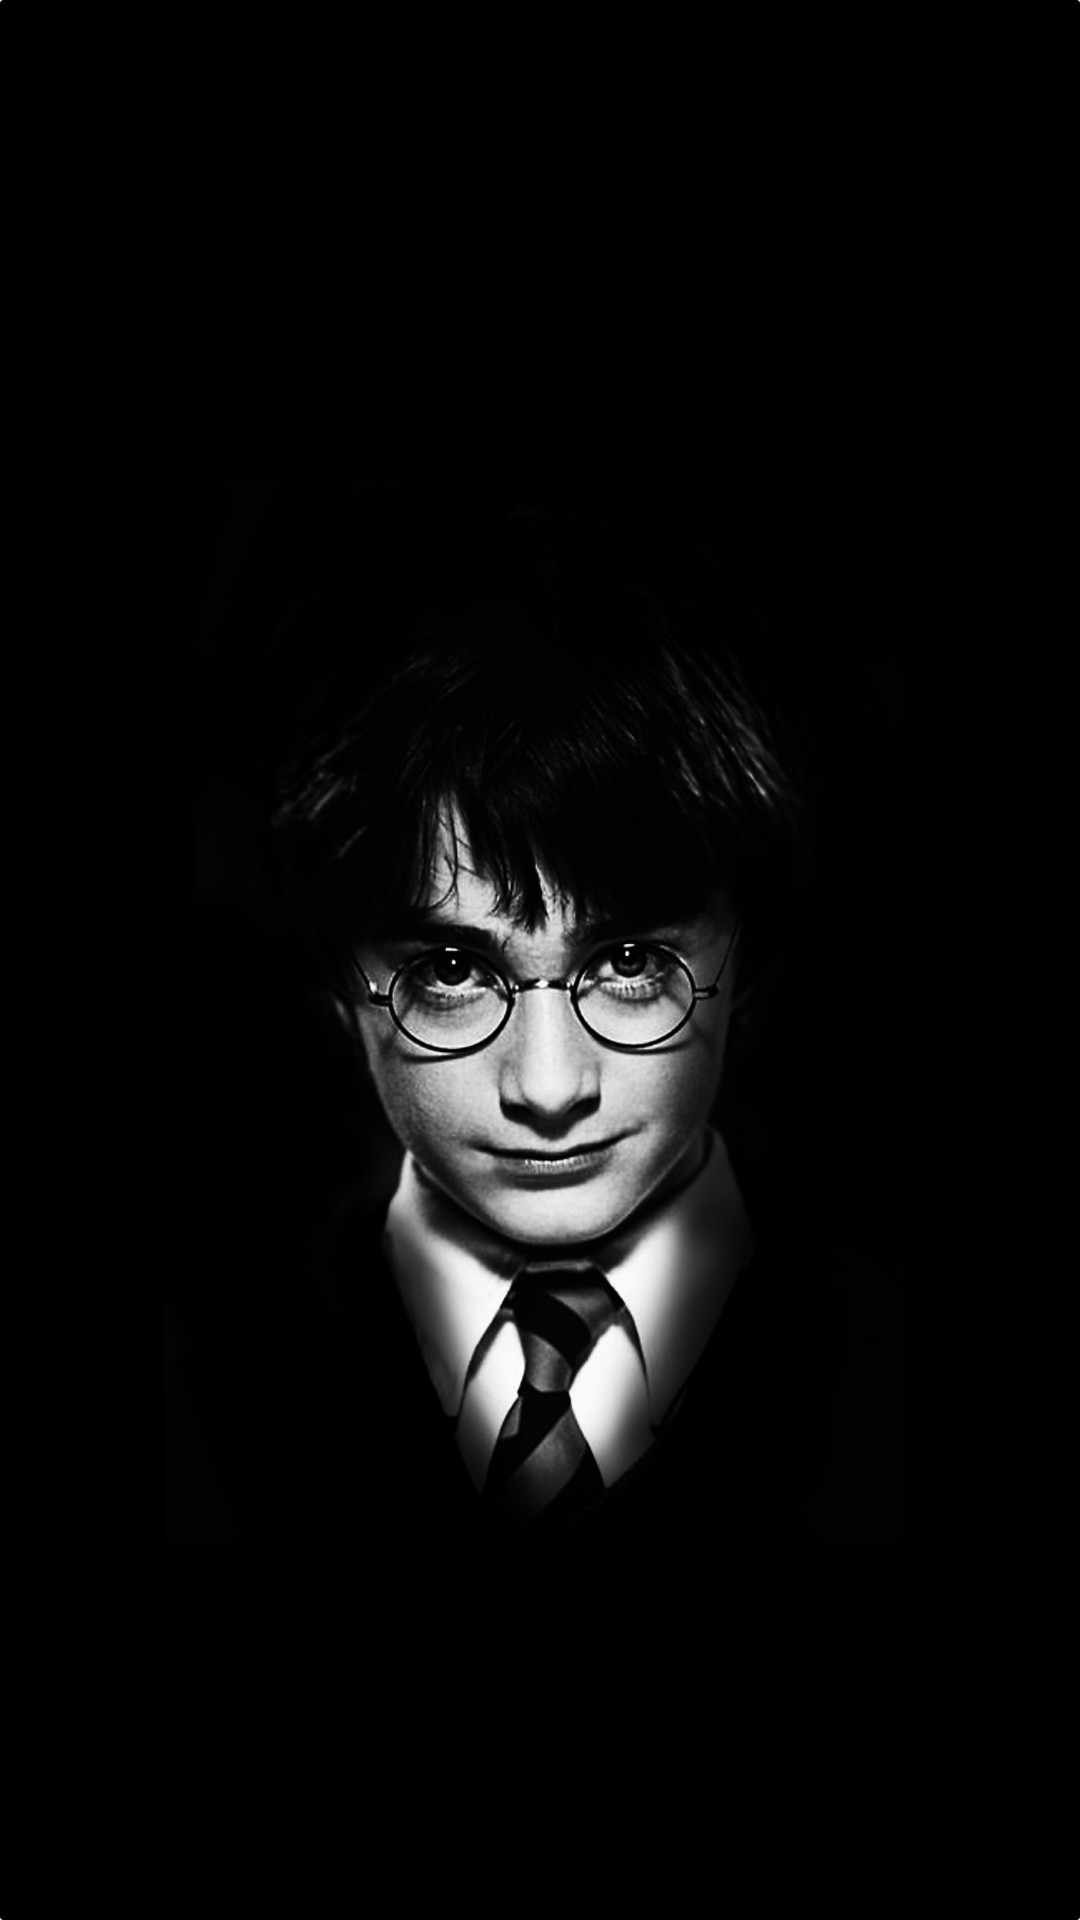 Cool Wallpaper Harry Potter Iphone 5 - 544109  HD_933017.jpg